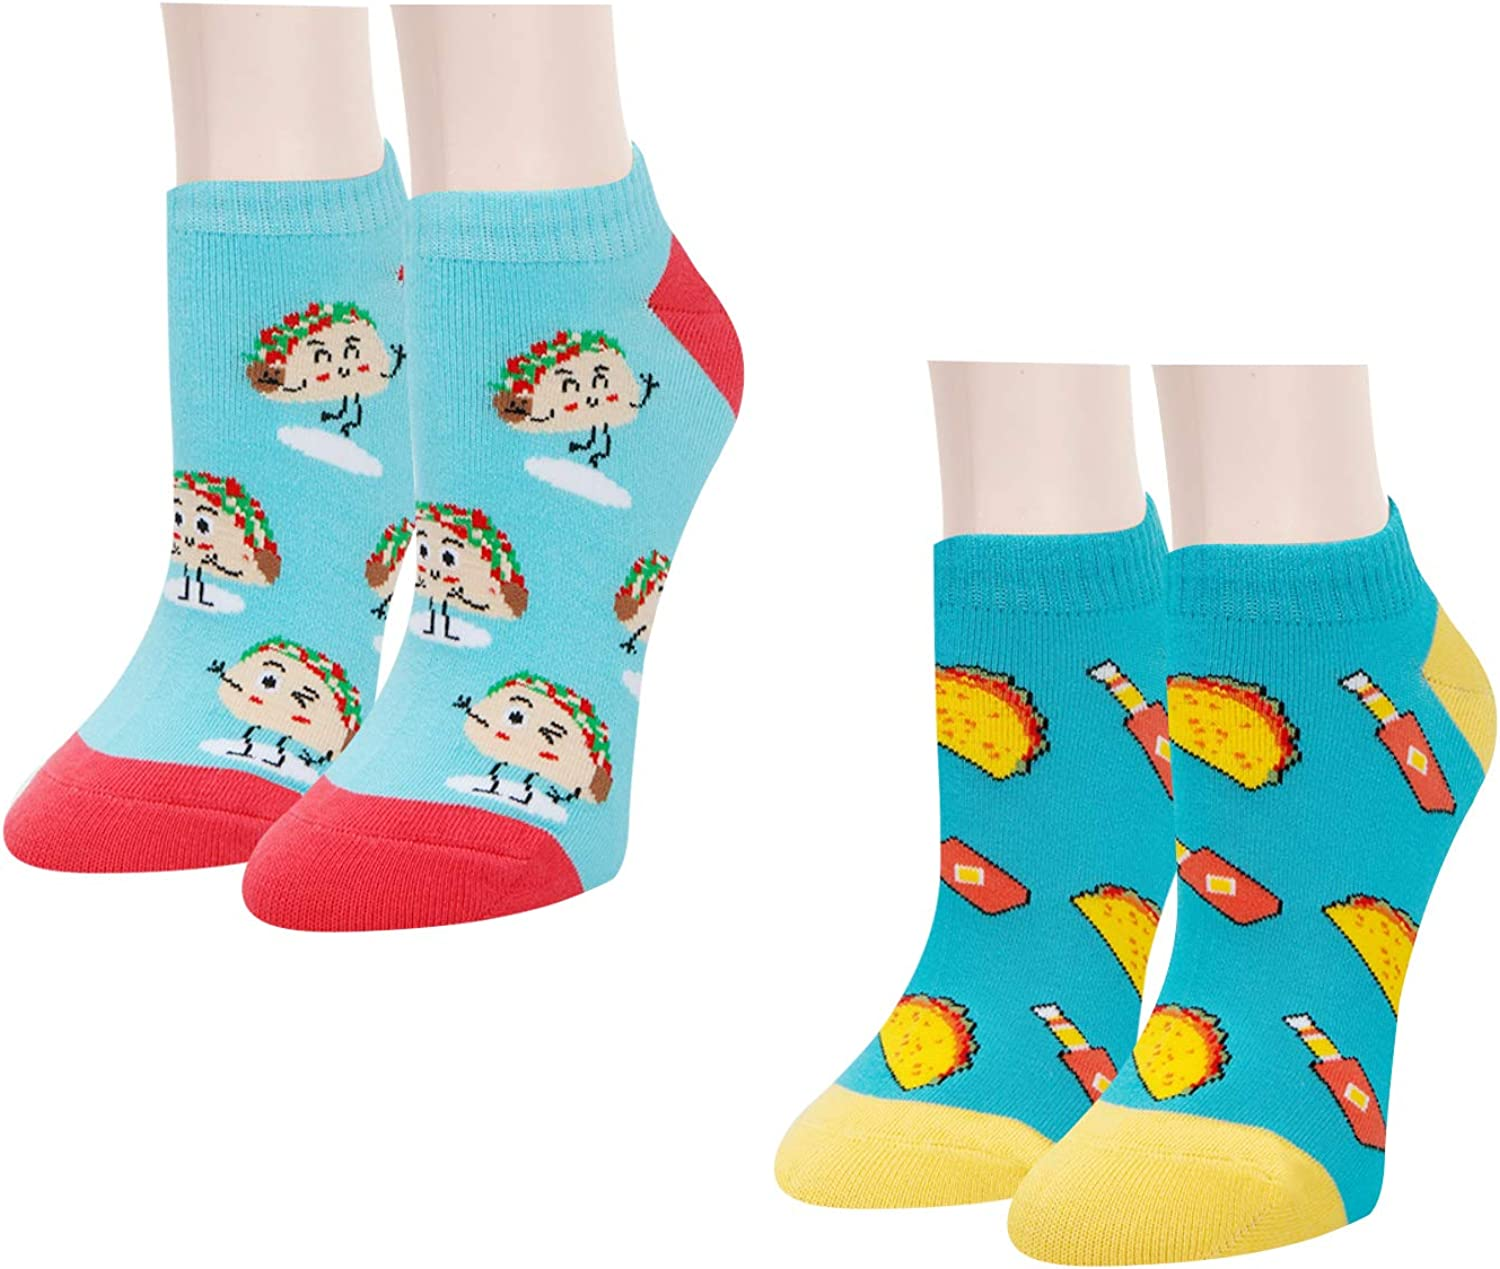 Zmart Women Novelty Funny Food Fruit No Show Low Cut Cozy Ankle Socks 2 Pack